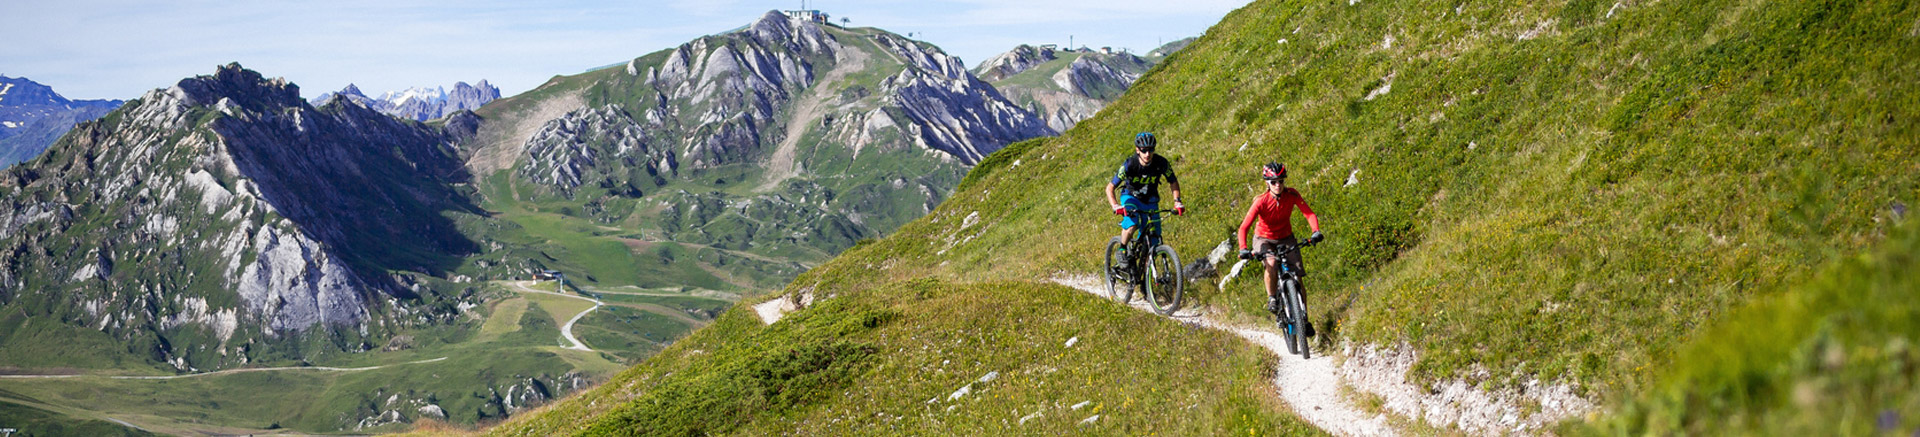 Location vtt Intersport Plagne Bellecote